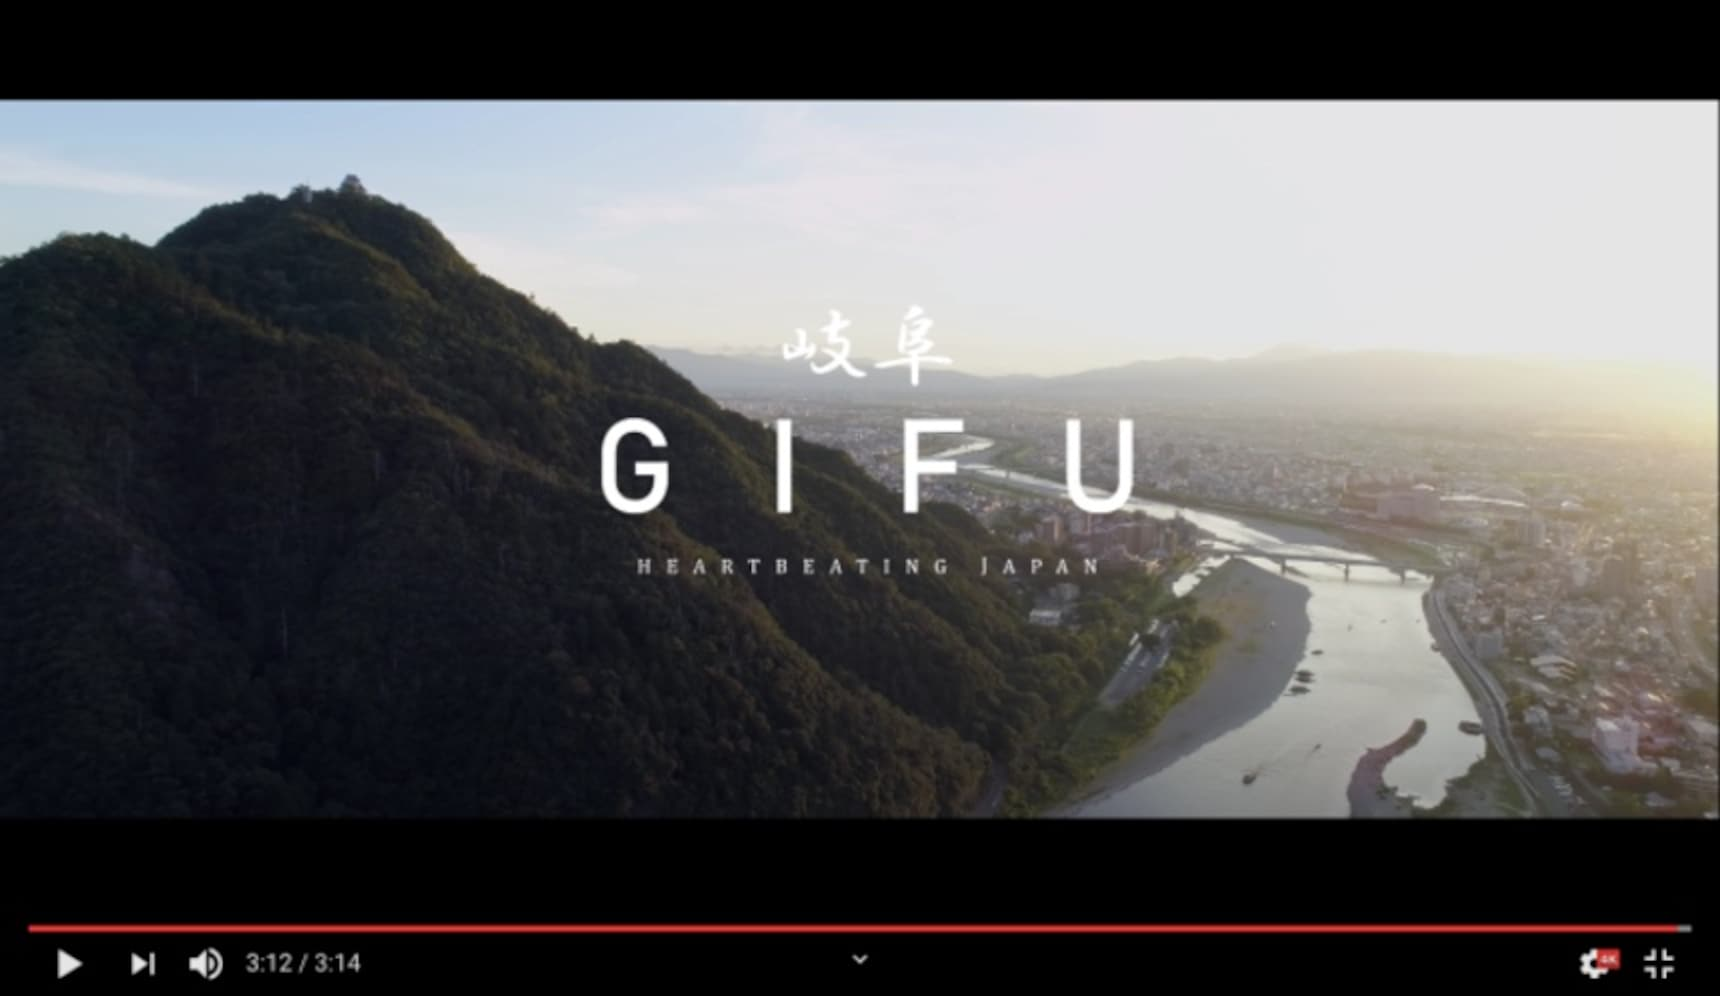 Experience the 'Heartbeat' of Japan in Gifu